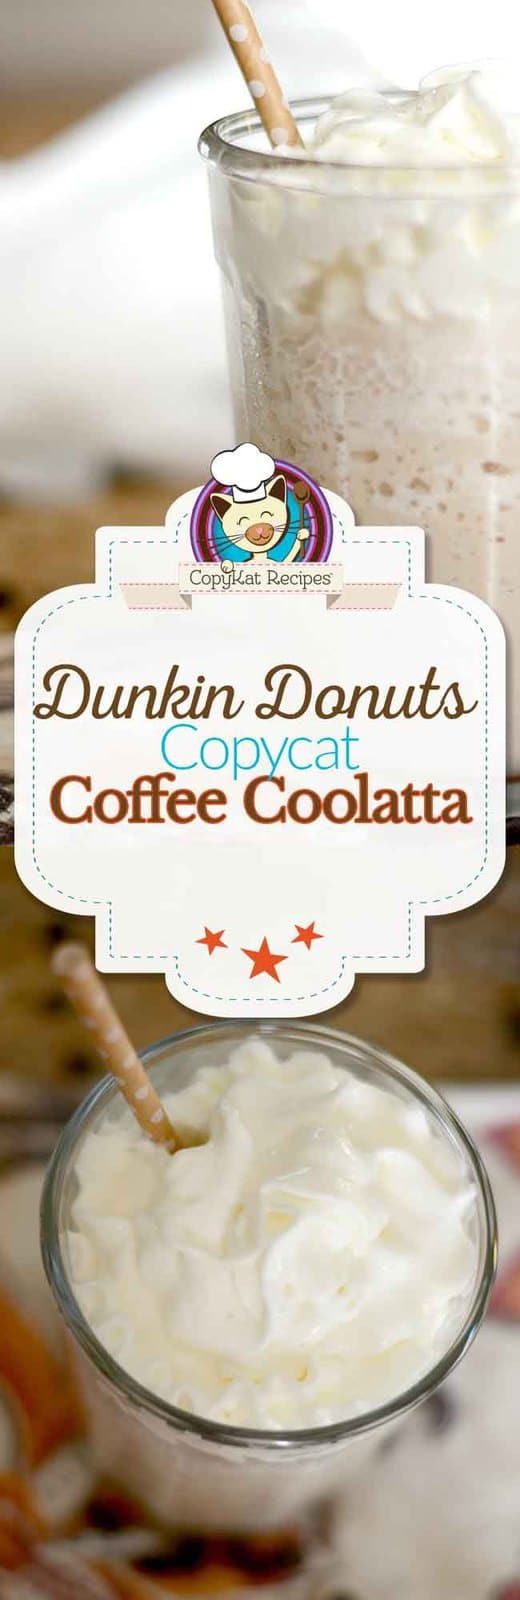 How to Make a Coffee Coolatta from Dunkin Donuts